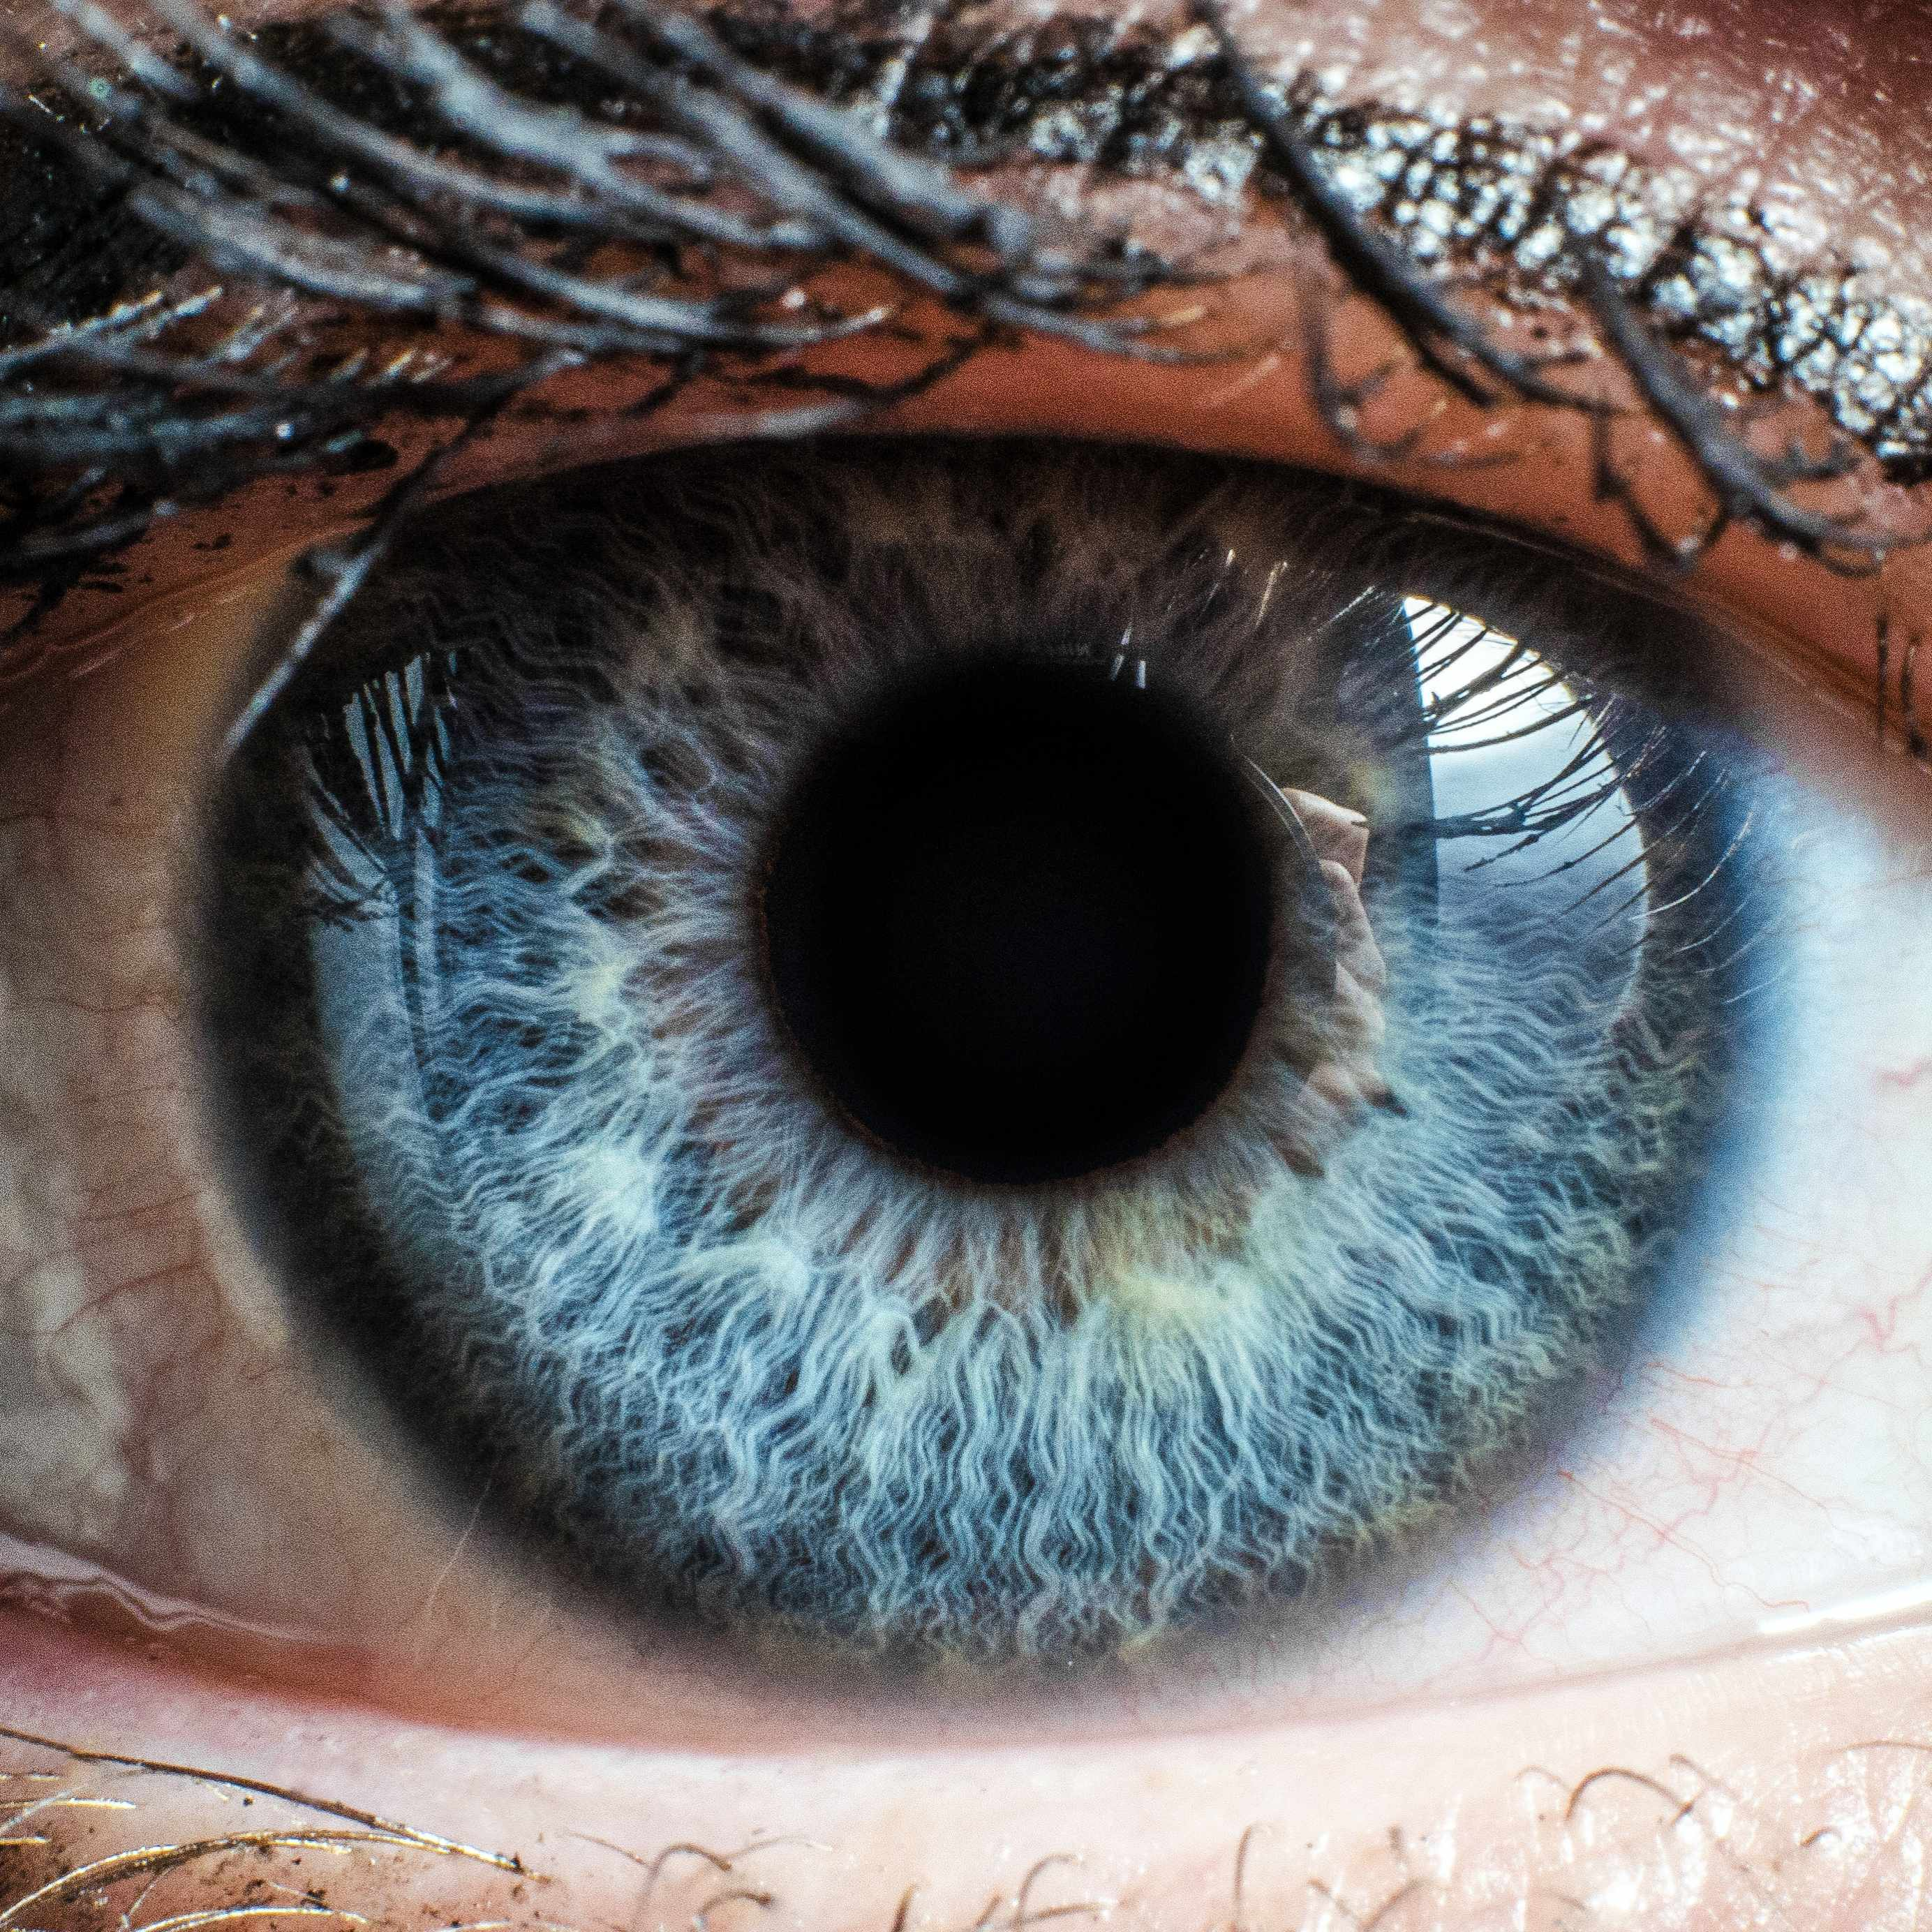 close up of a person's right eye, blue with lashes